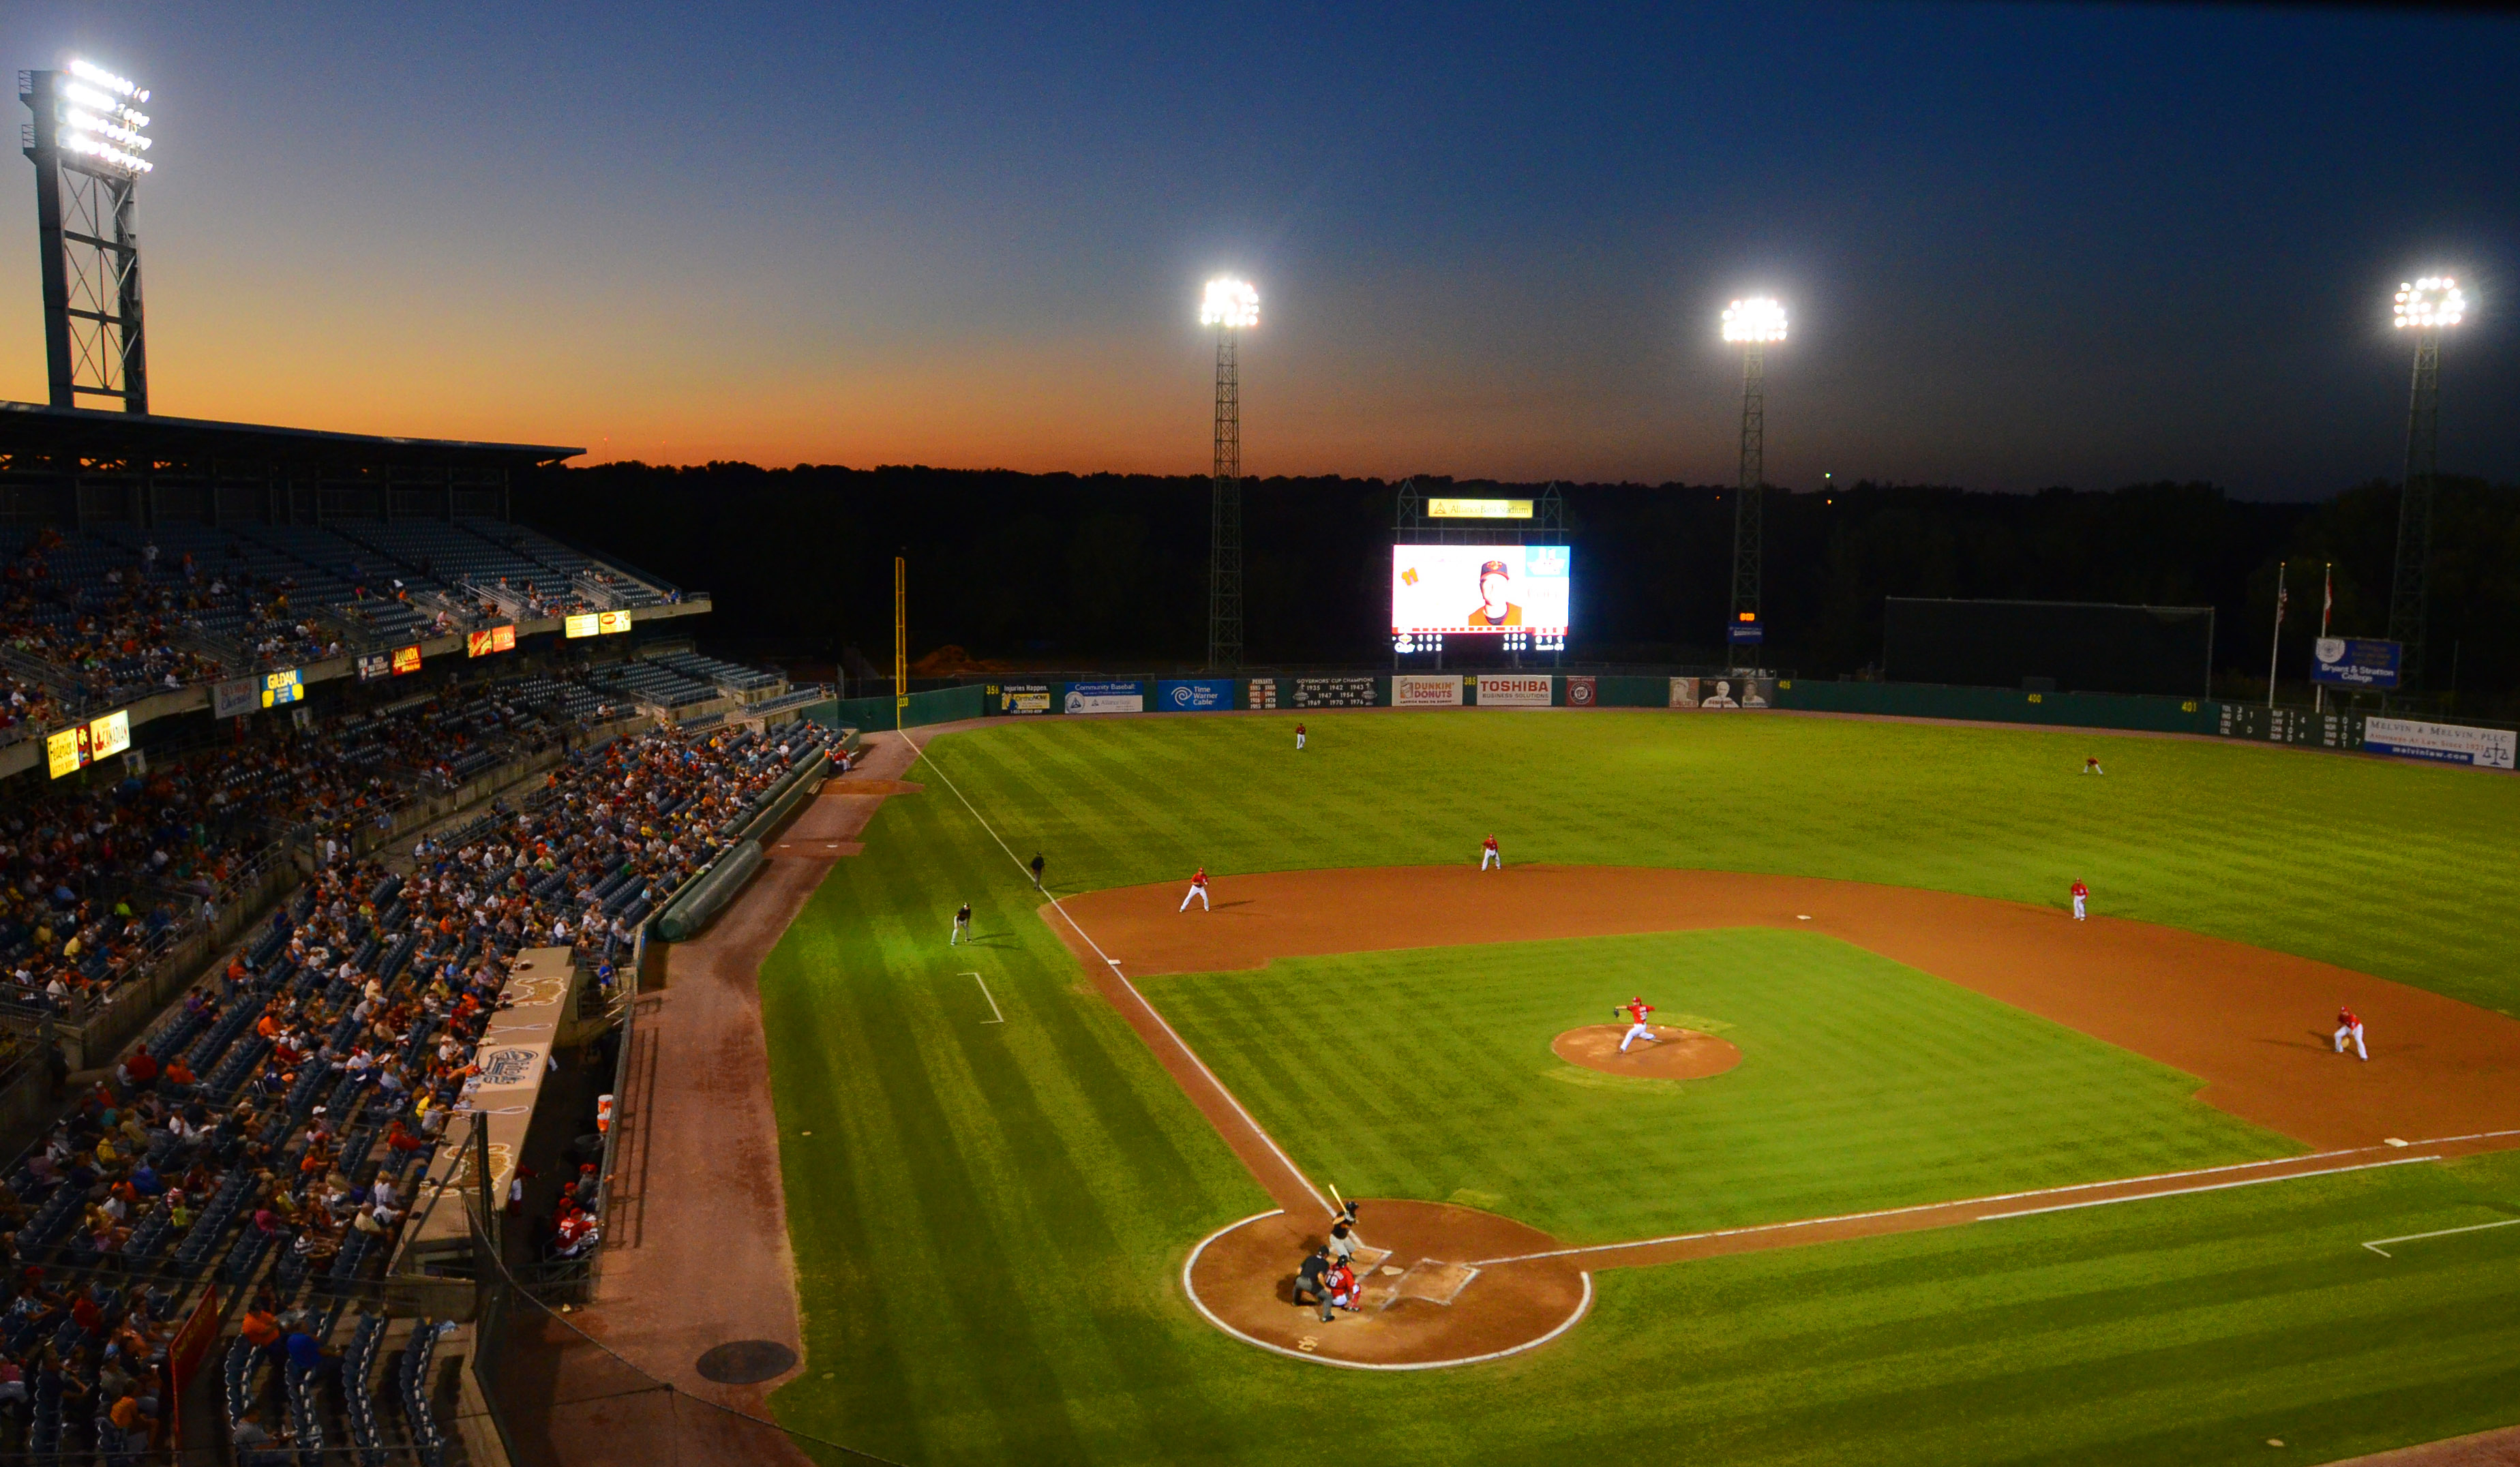 What changes will be made to NBT Bank Stadium by Syracuse Mets' 2020 opener?